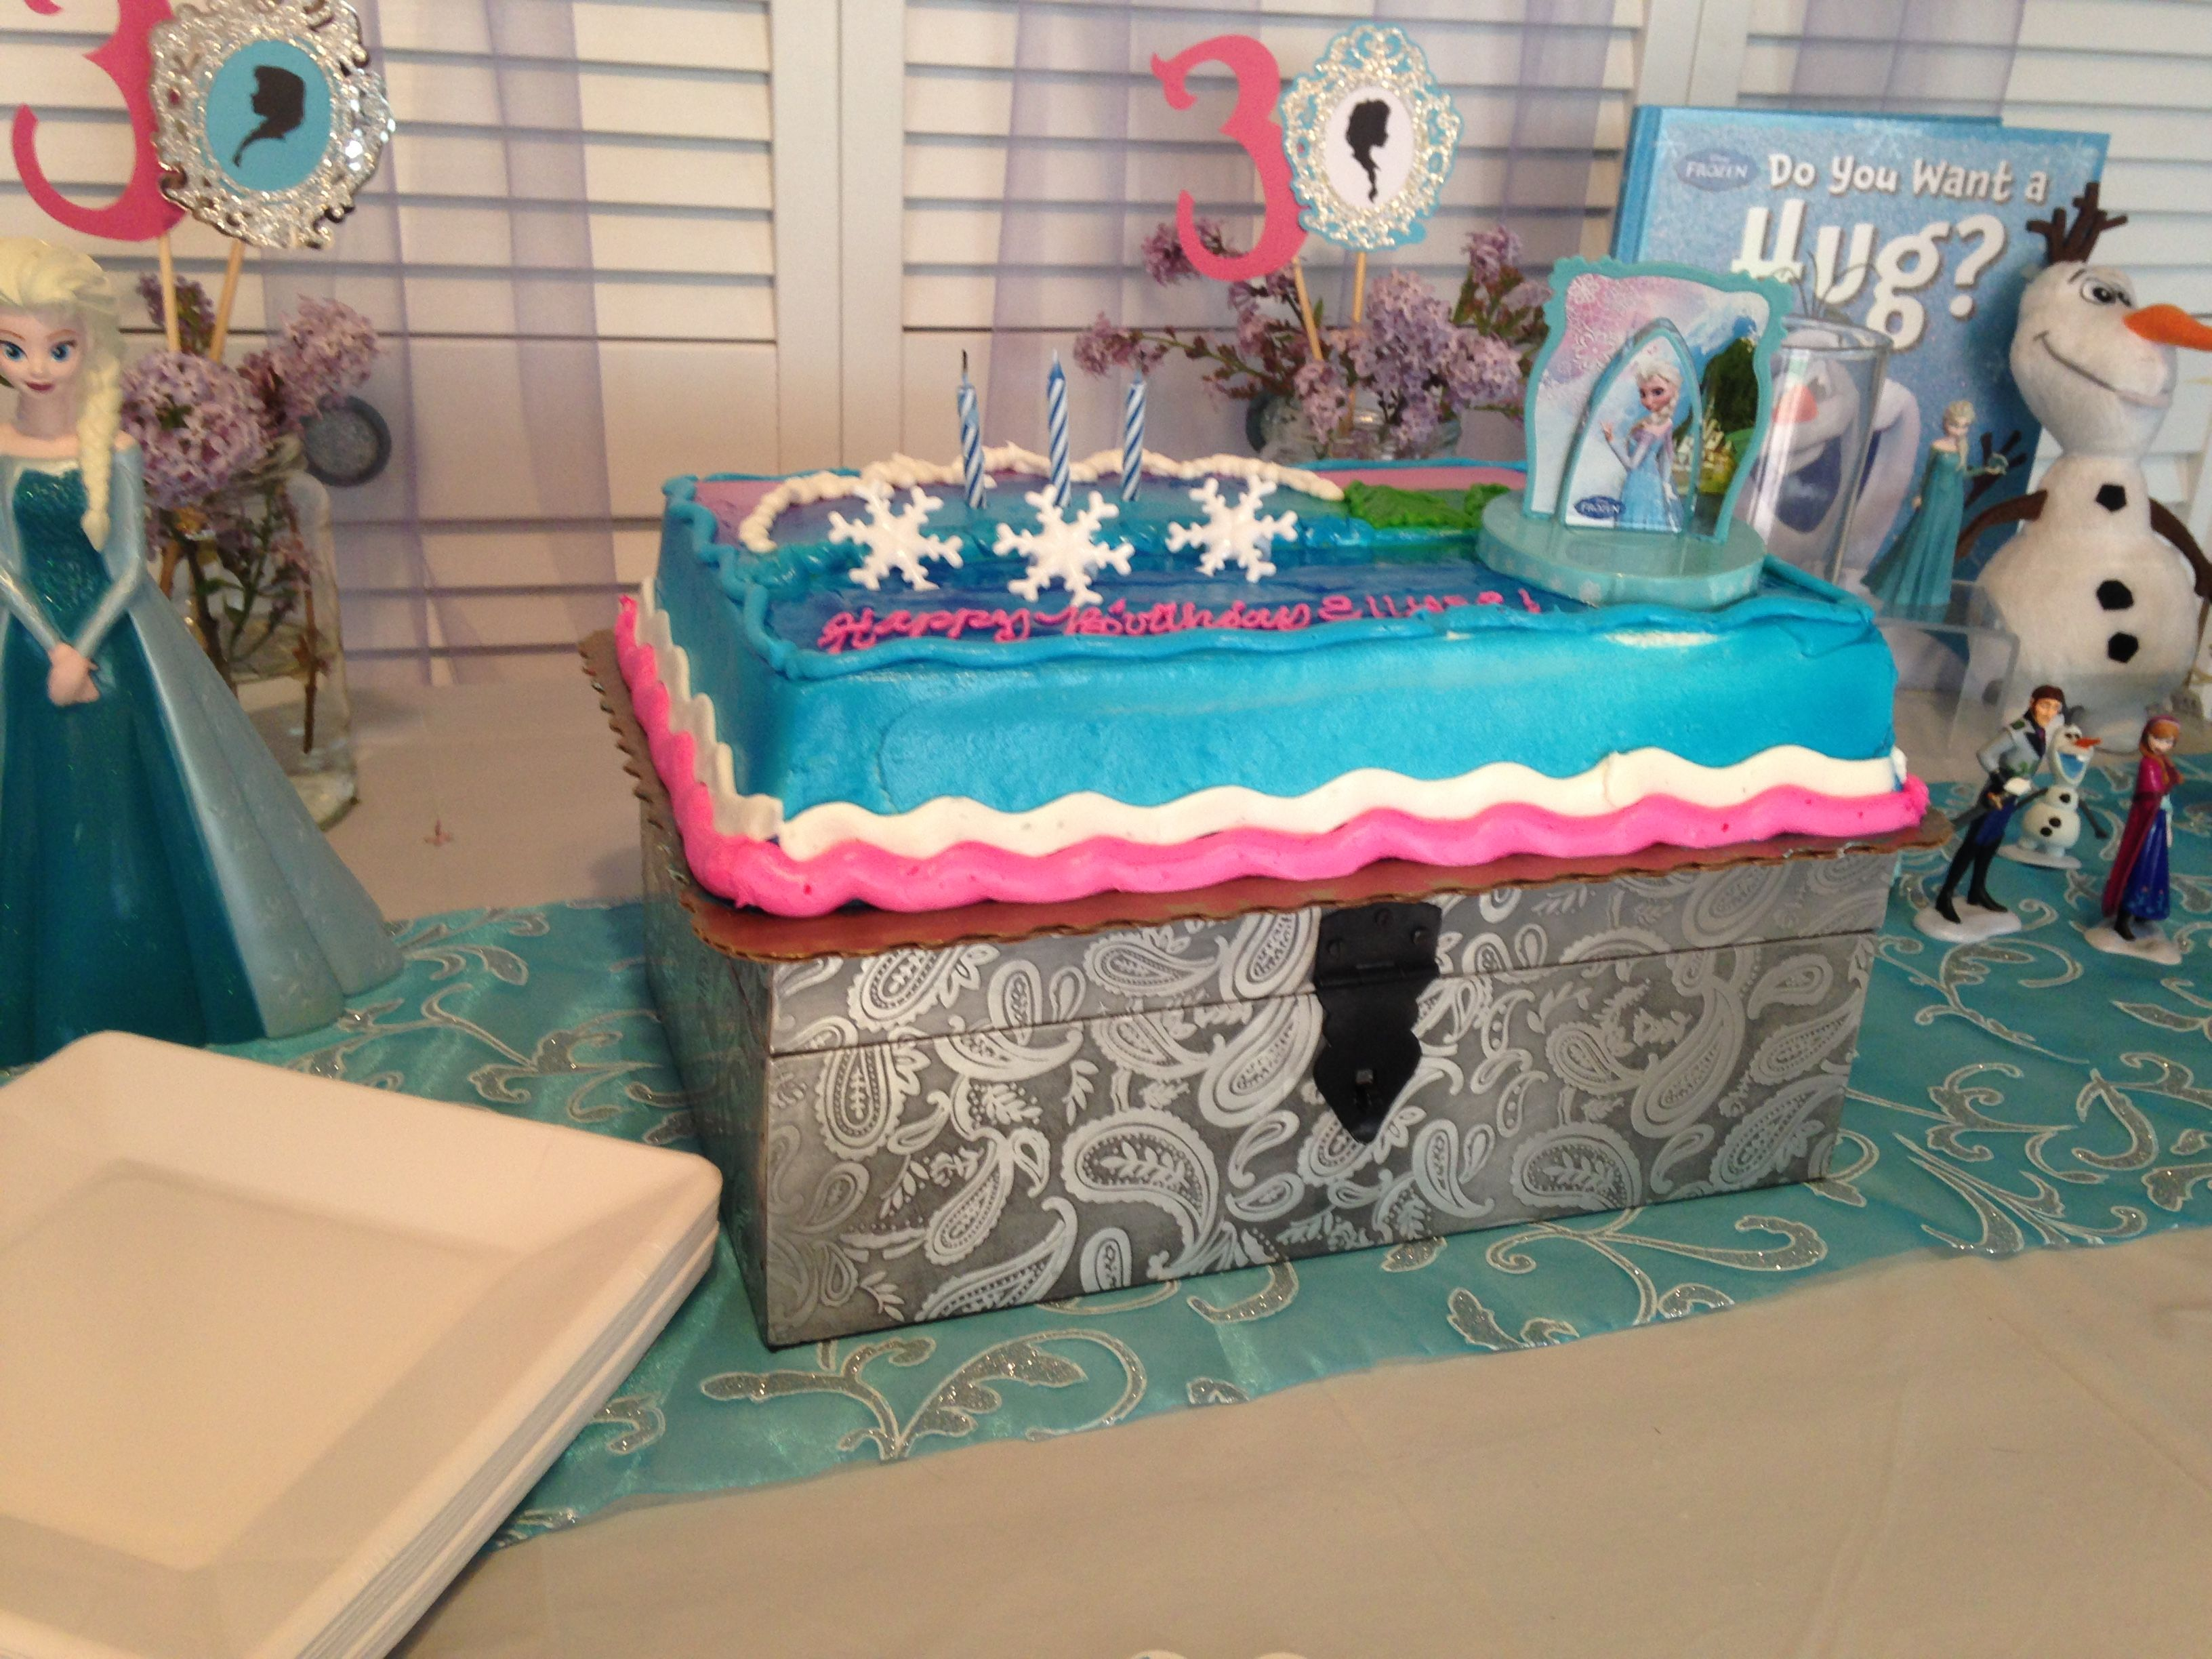 Frozen birthday cake by King Soopers Big Dreams Frozen Birthday